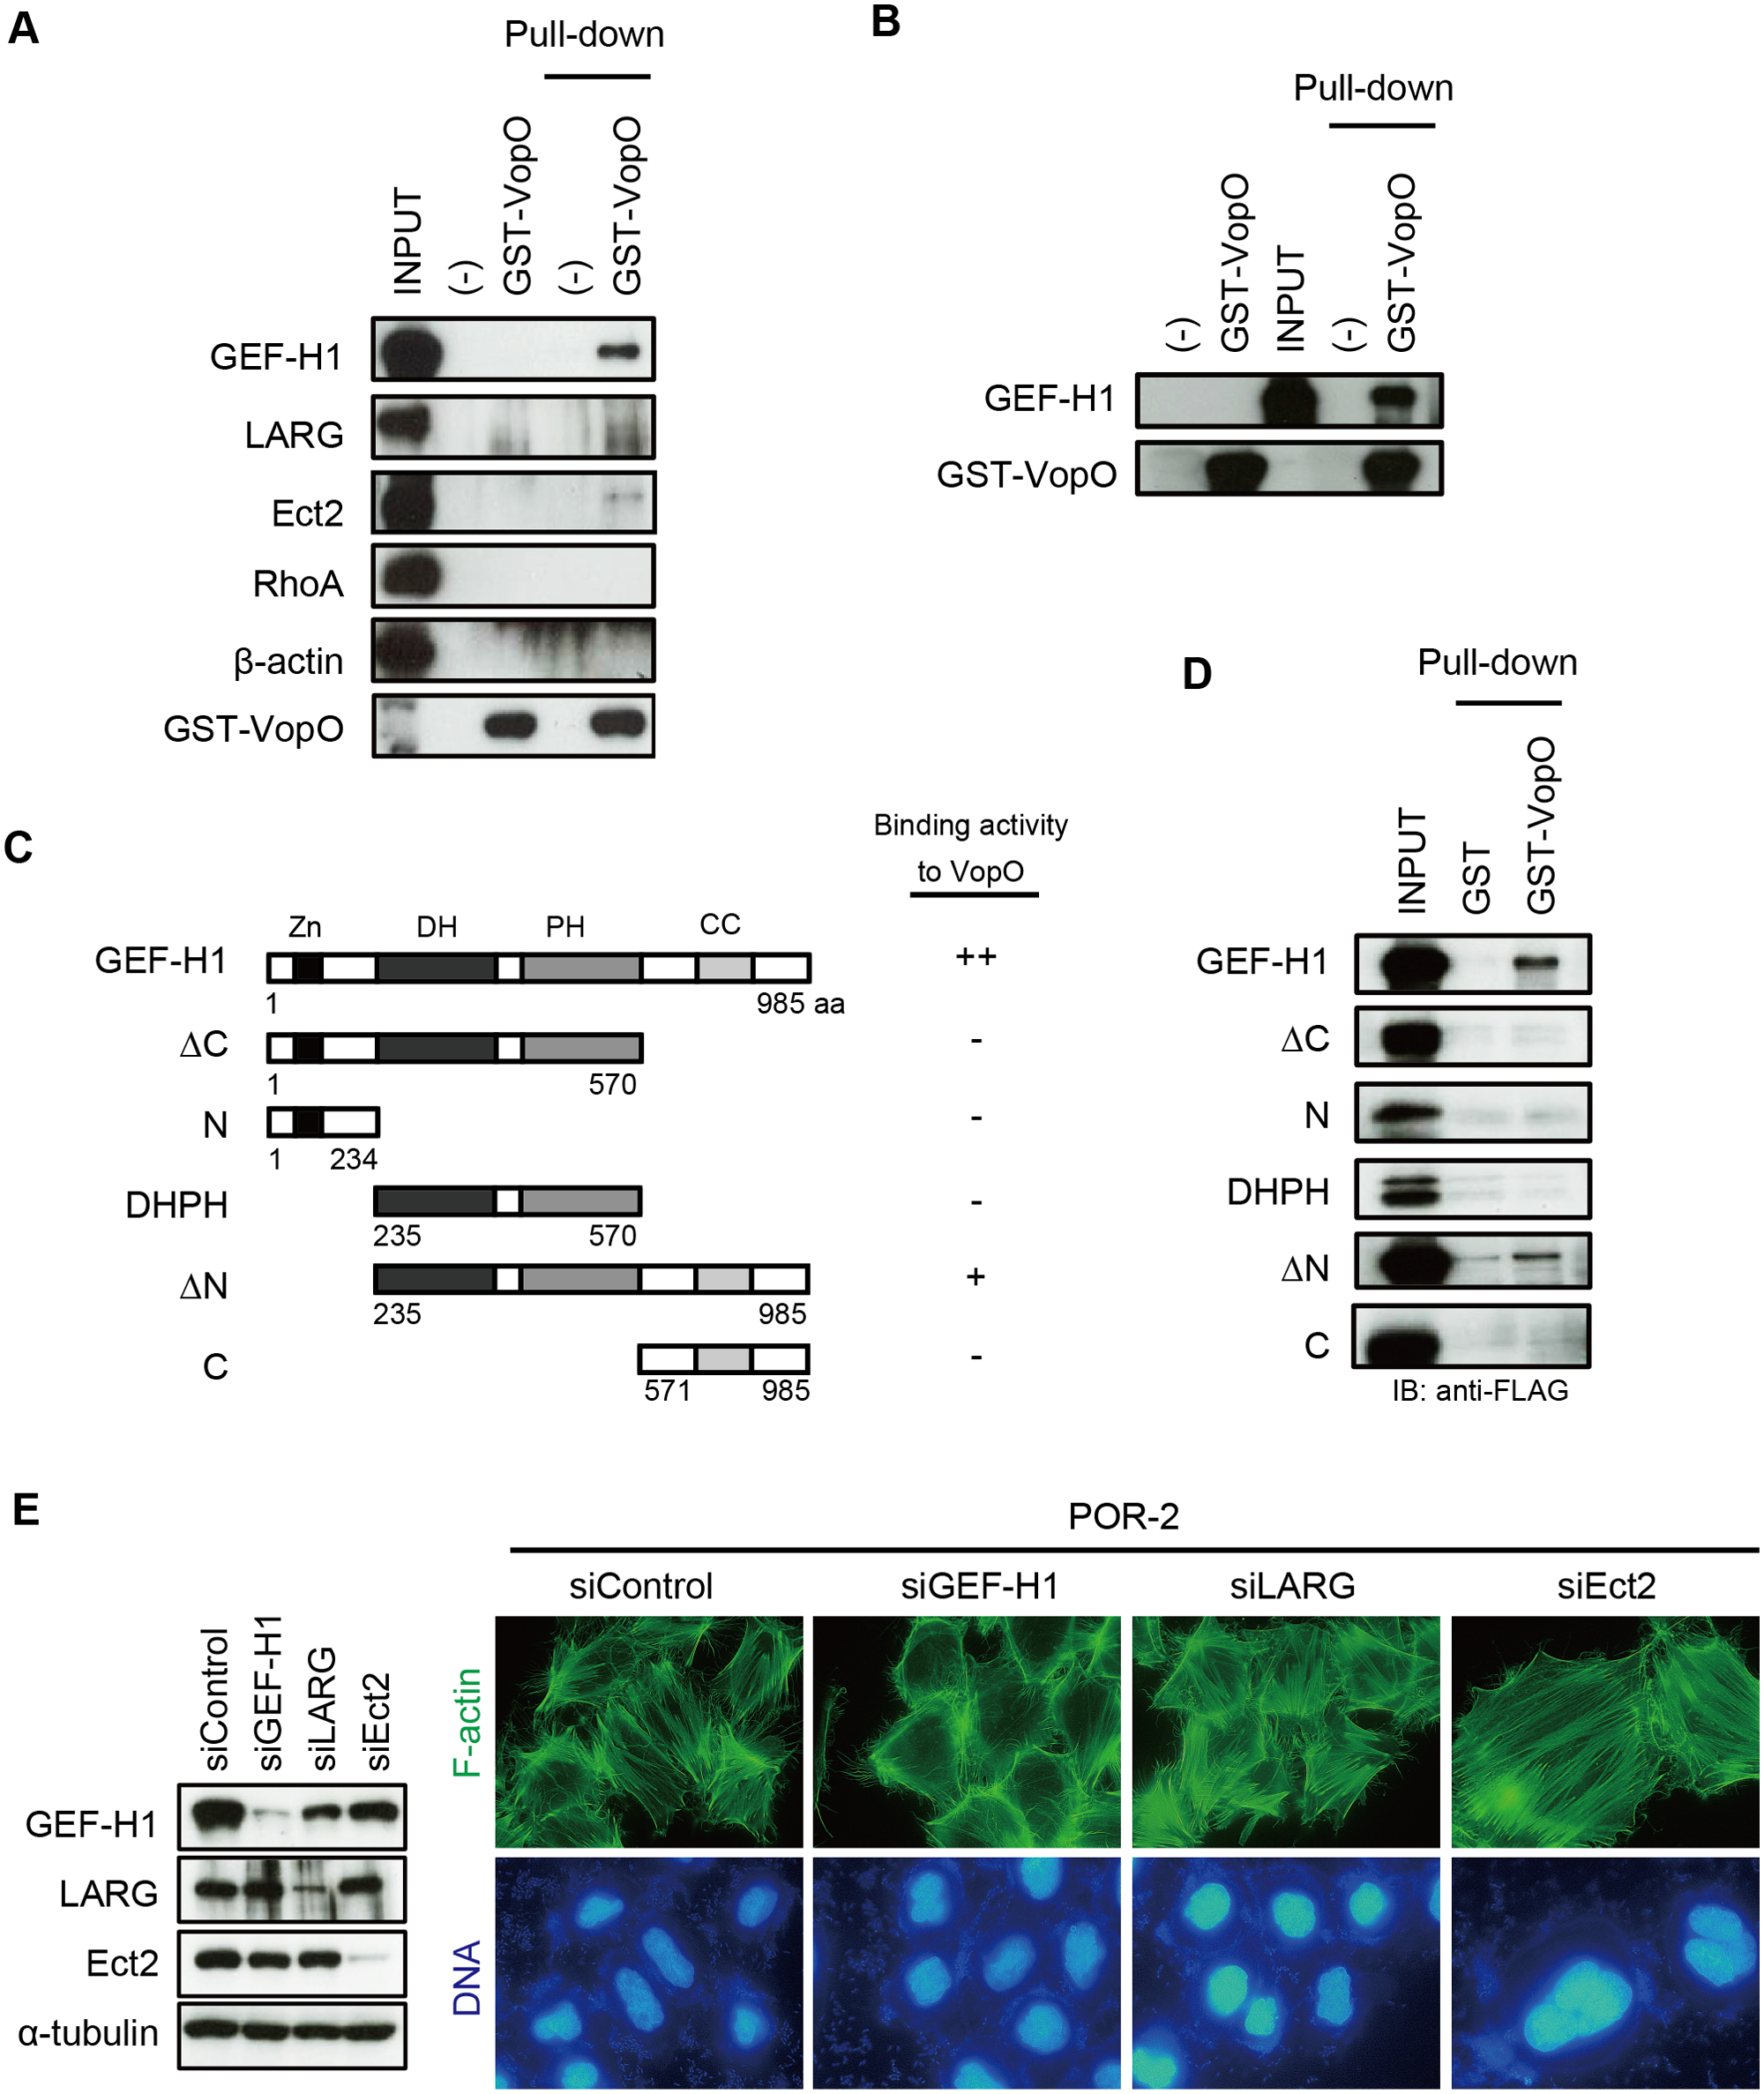 GEF-H1, a VopO binding partner, is necessary for VopO-induced stress fiber formation.